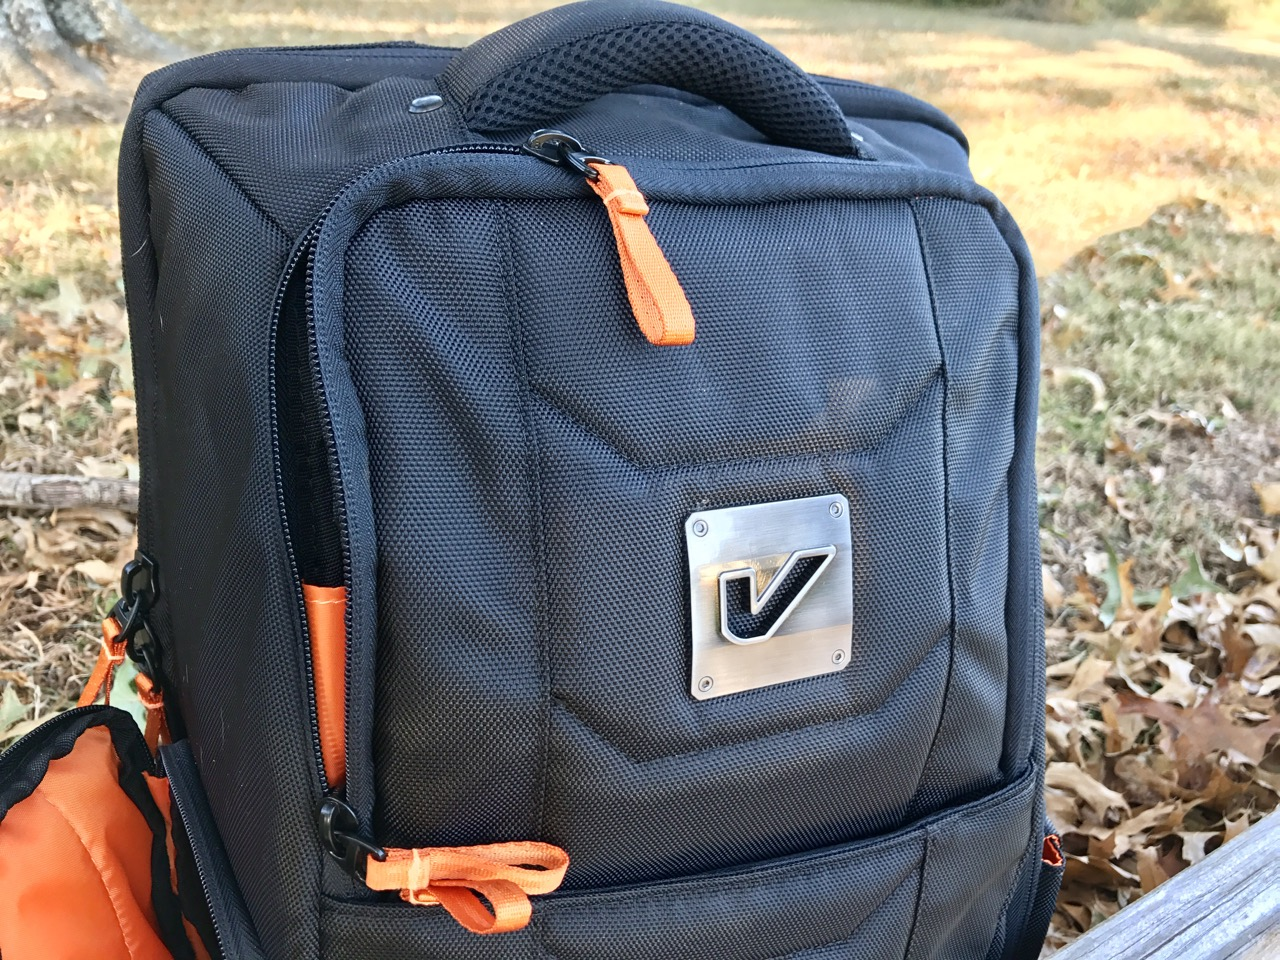 Backpack Review: The GRUV GEAR Club Bag 2